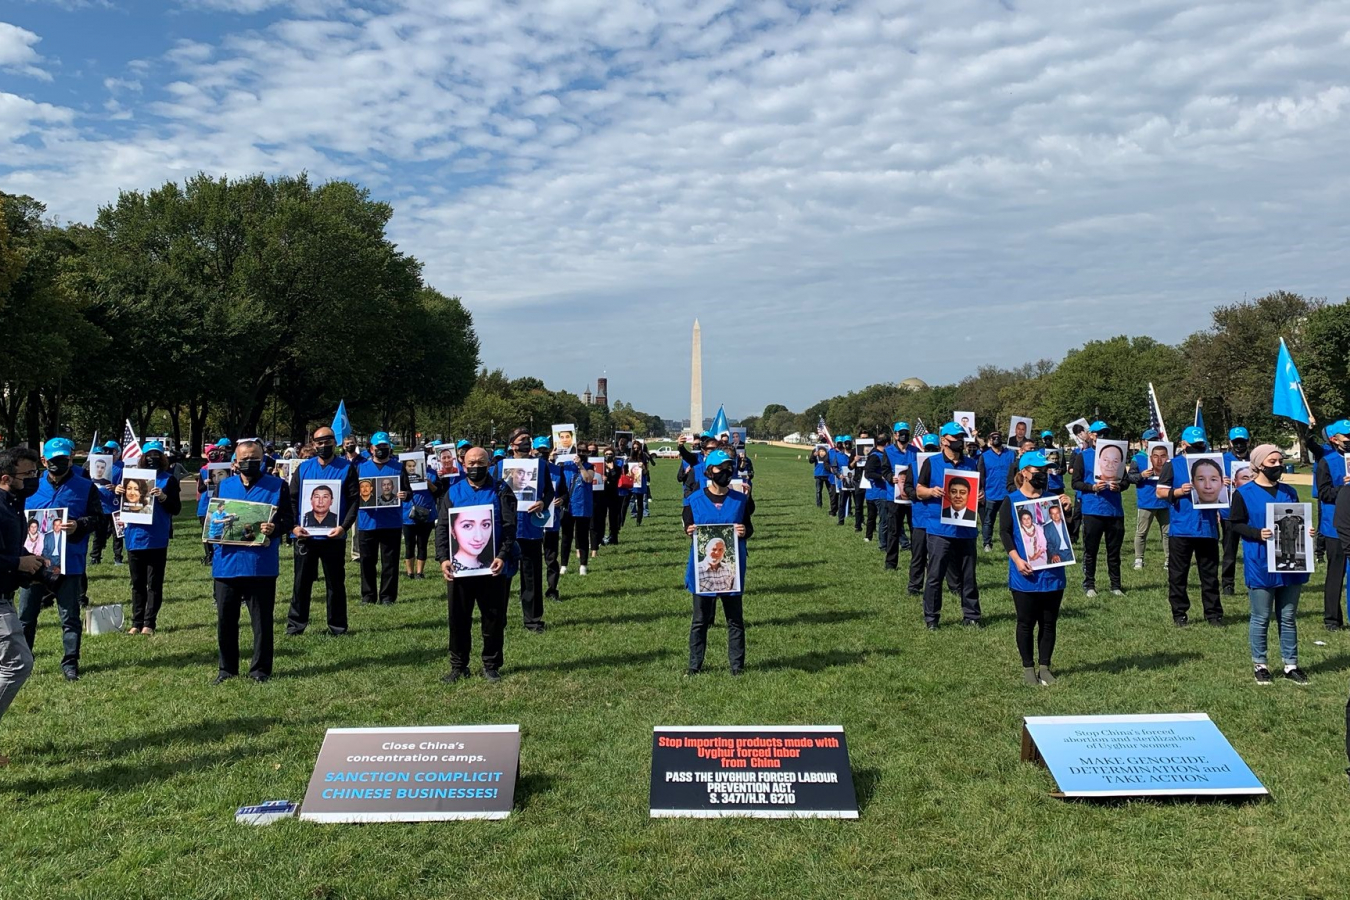 Global Day Action by Uyghurs in the US 1 October 2020